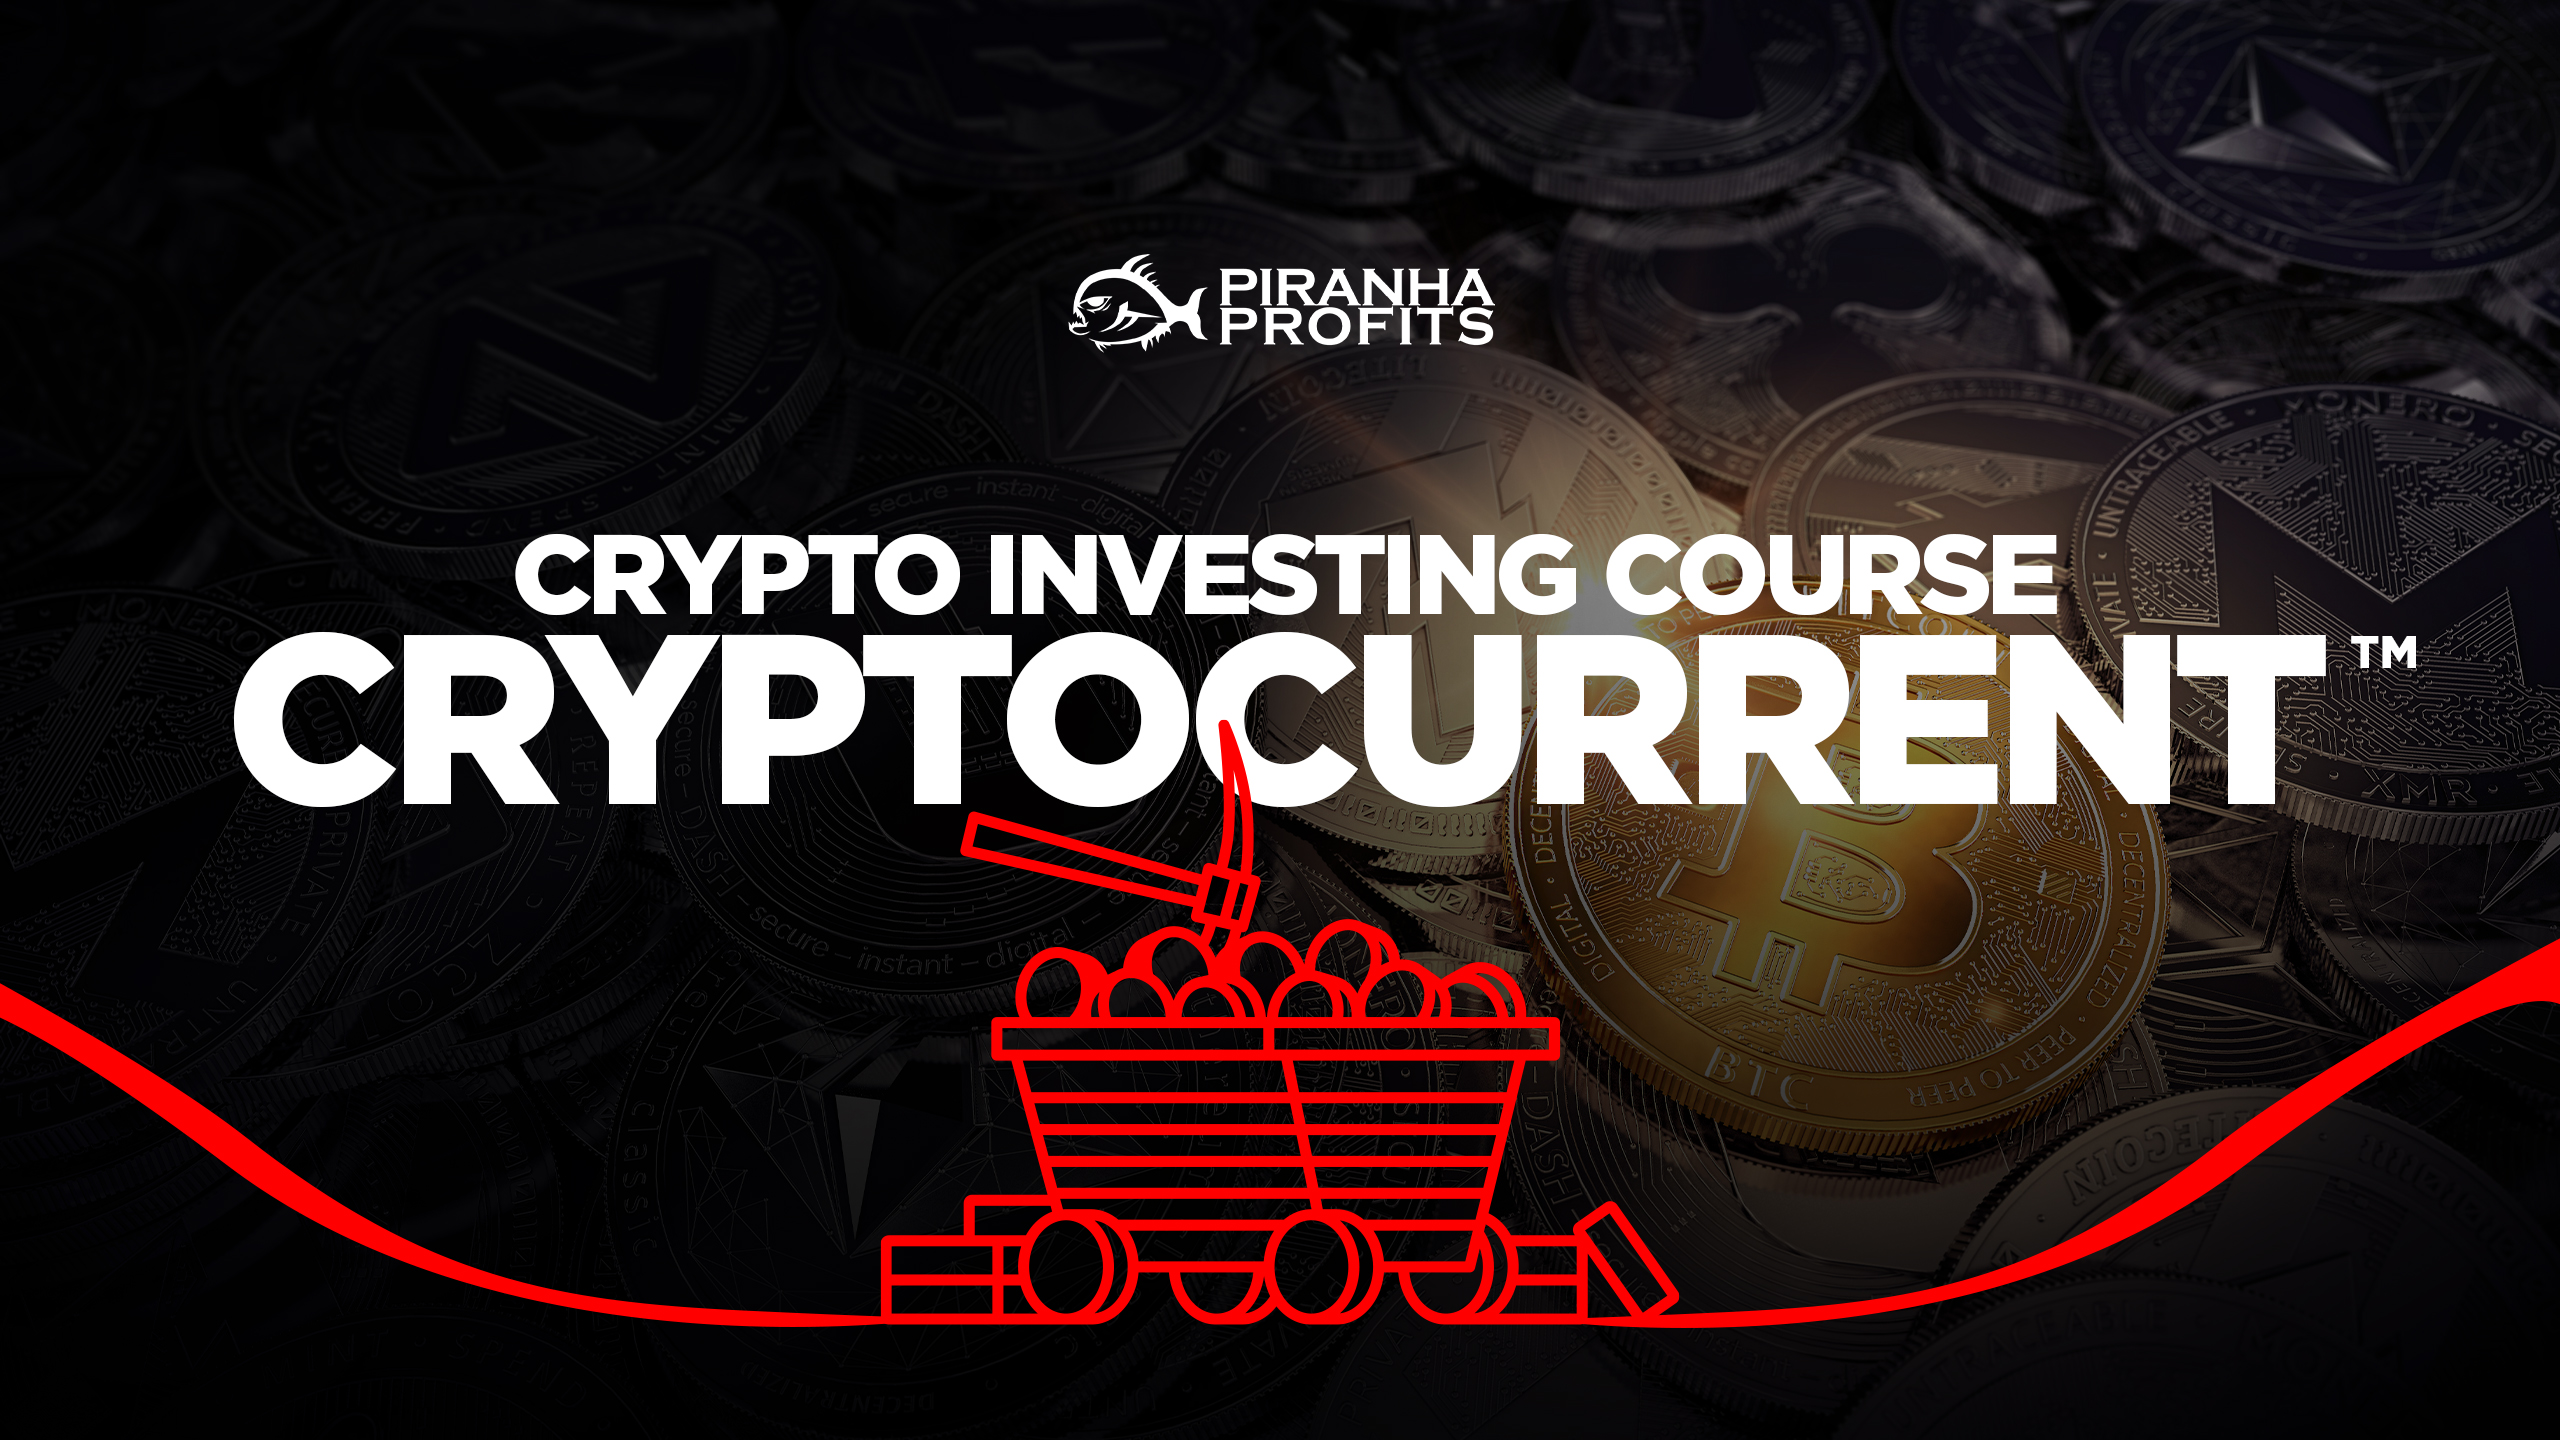 Cryptocurrency investing course banner